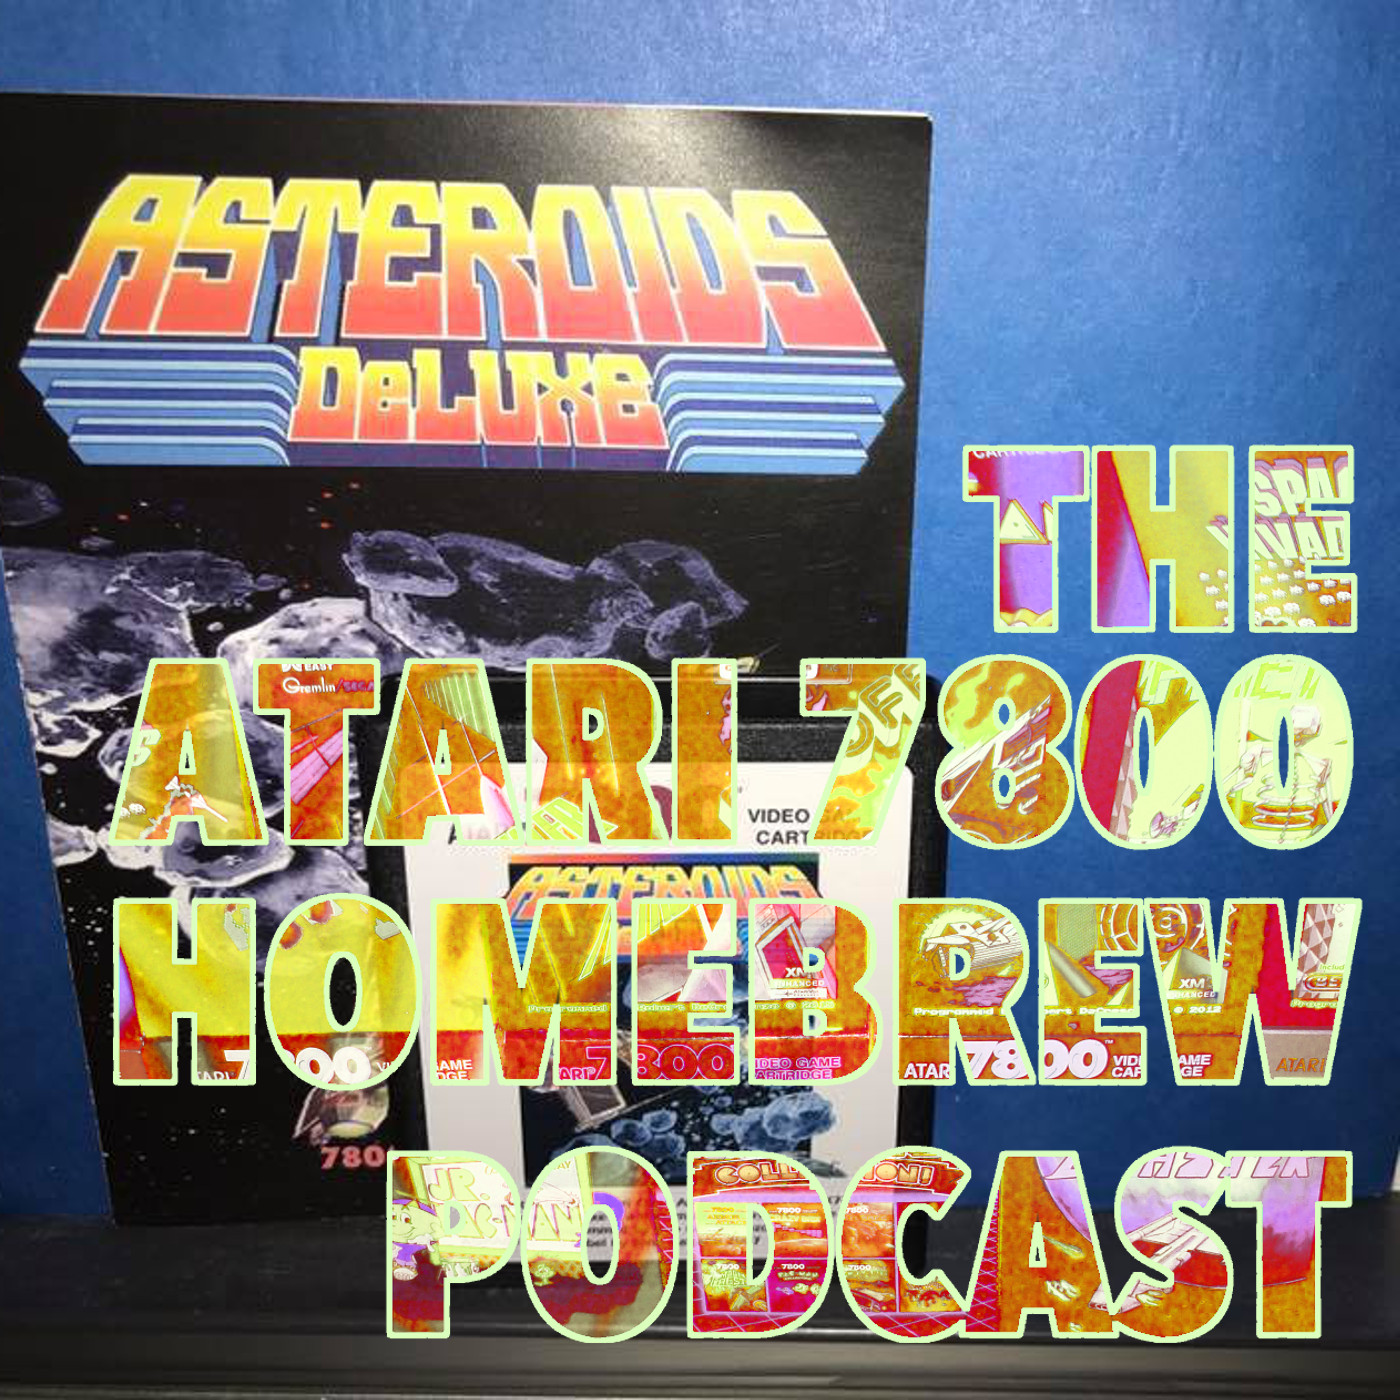 Episode 13: Asteroids DeLuxe